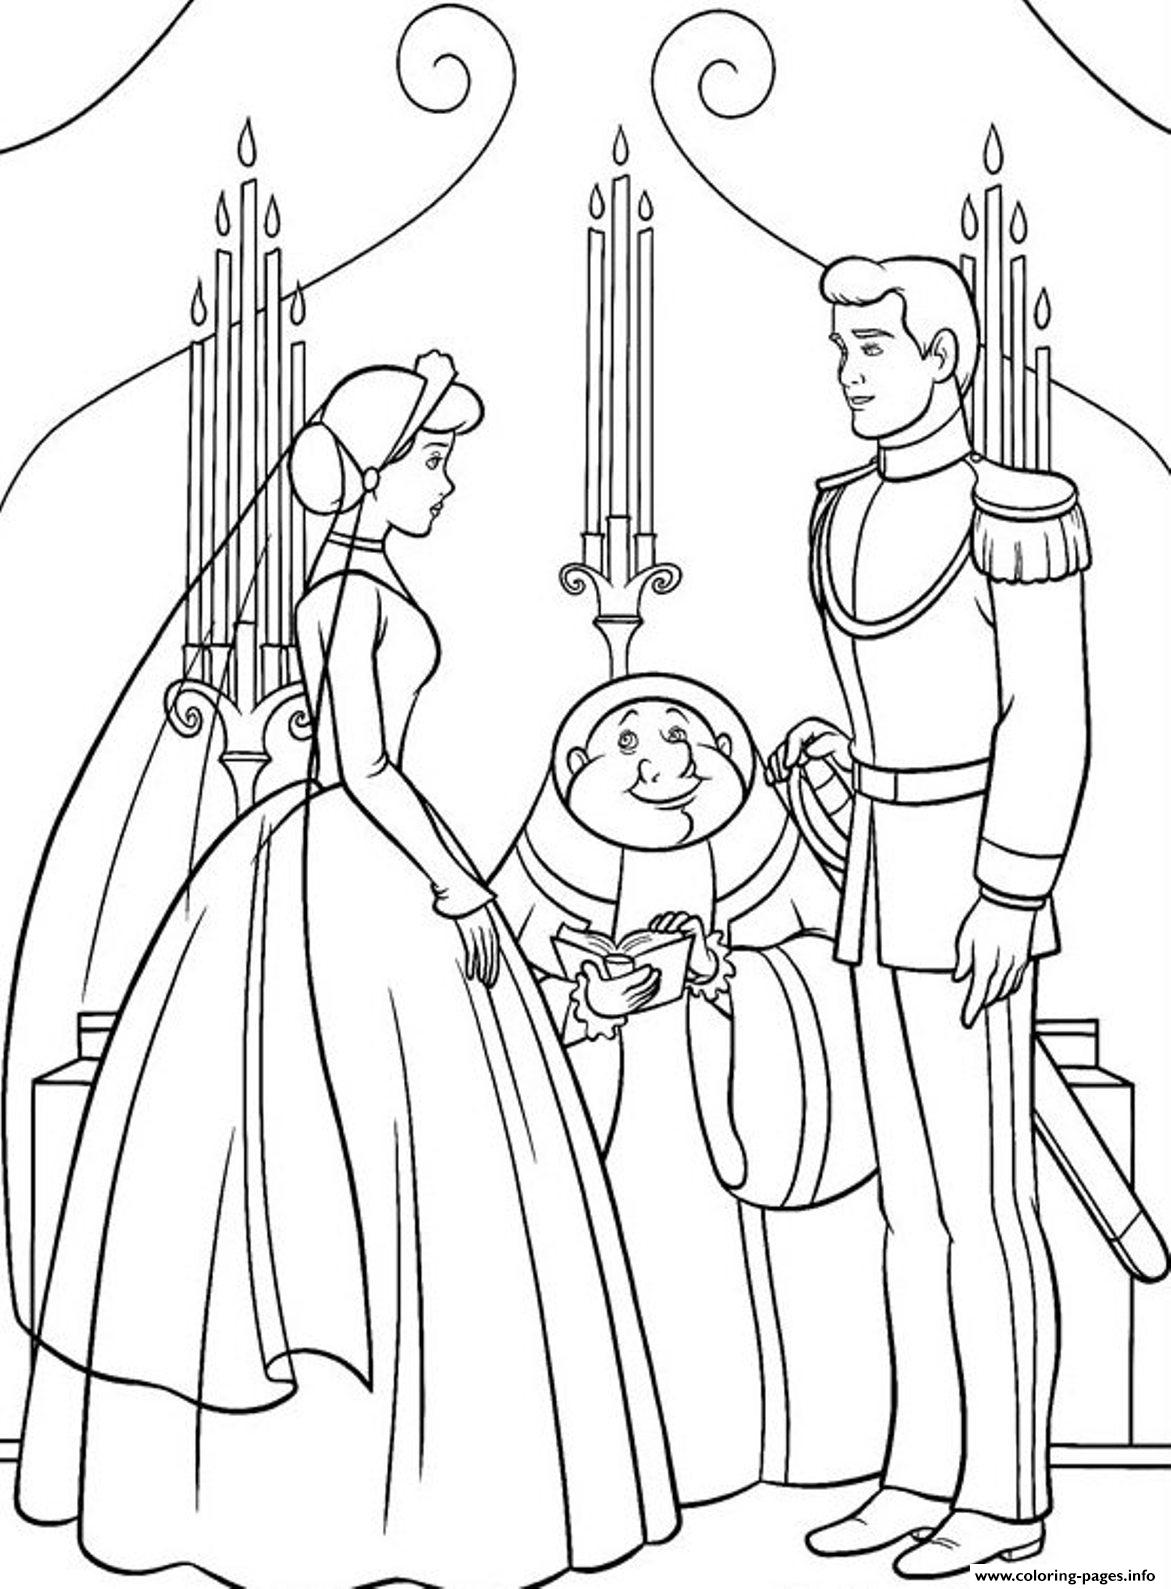 Princess Married With Prince Cinderella S For Kids Coloring Pages Printable